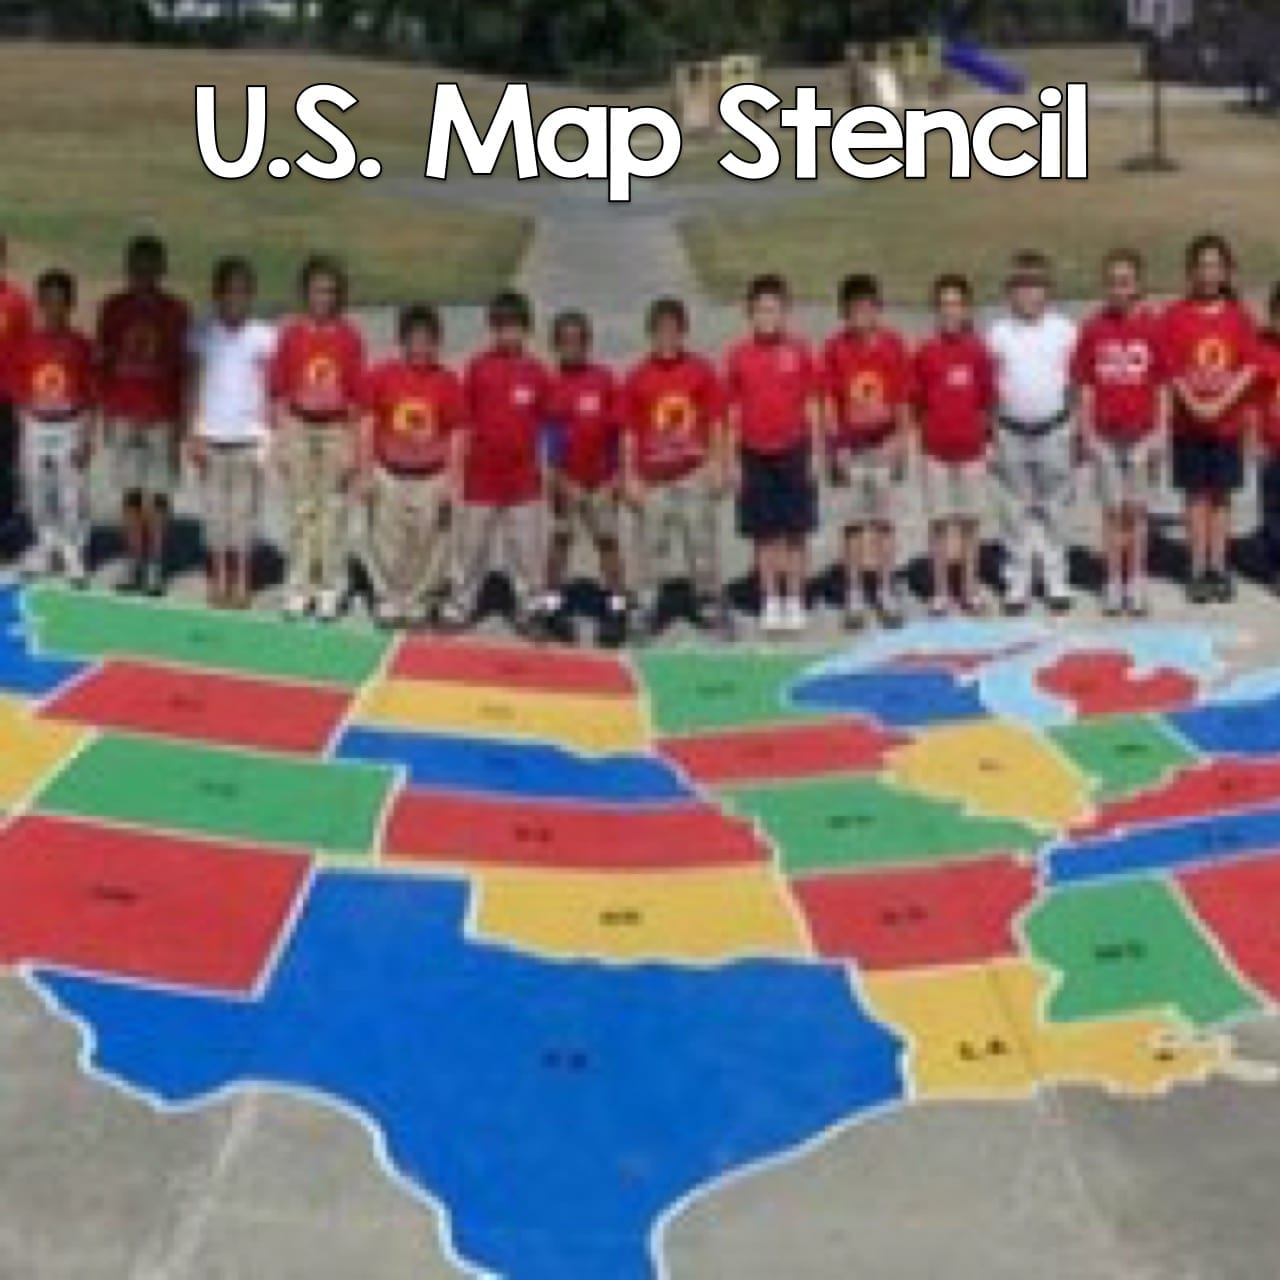 US Map Stencil Peaceful Playgrounds - Us map stencil